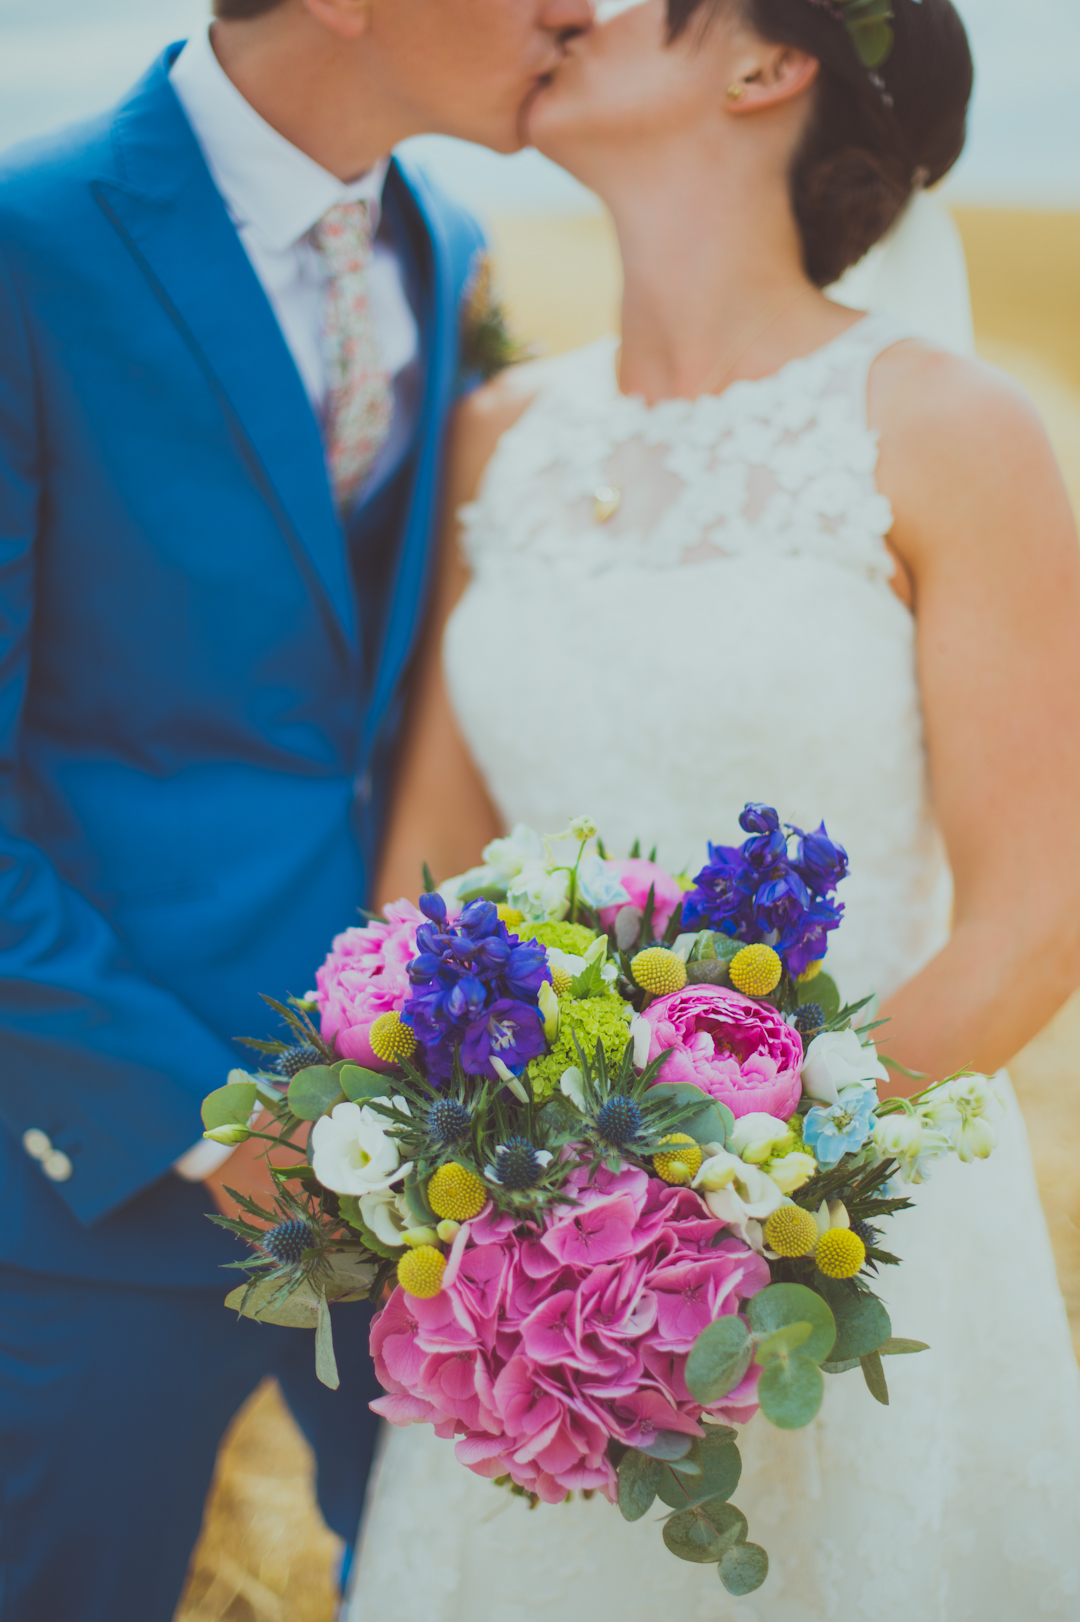 festival-bride-and-groom-vicky-and-james-wedfest